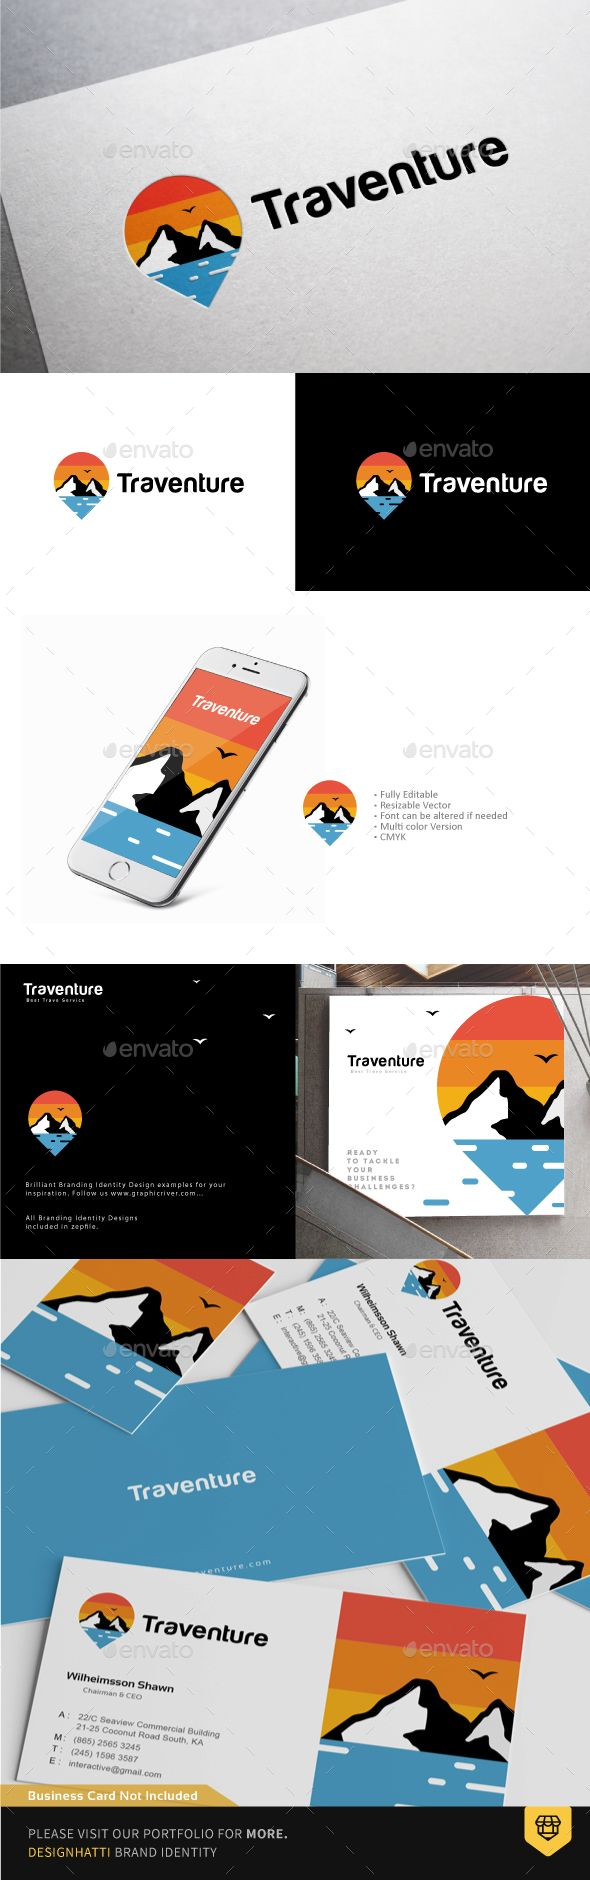 Travel Pin Logo - Nature Logo Templates Download here : https://graphicriver.net/item/travel-pin-logo/19260940?s_rank=41&ref=Al-fatih